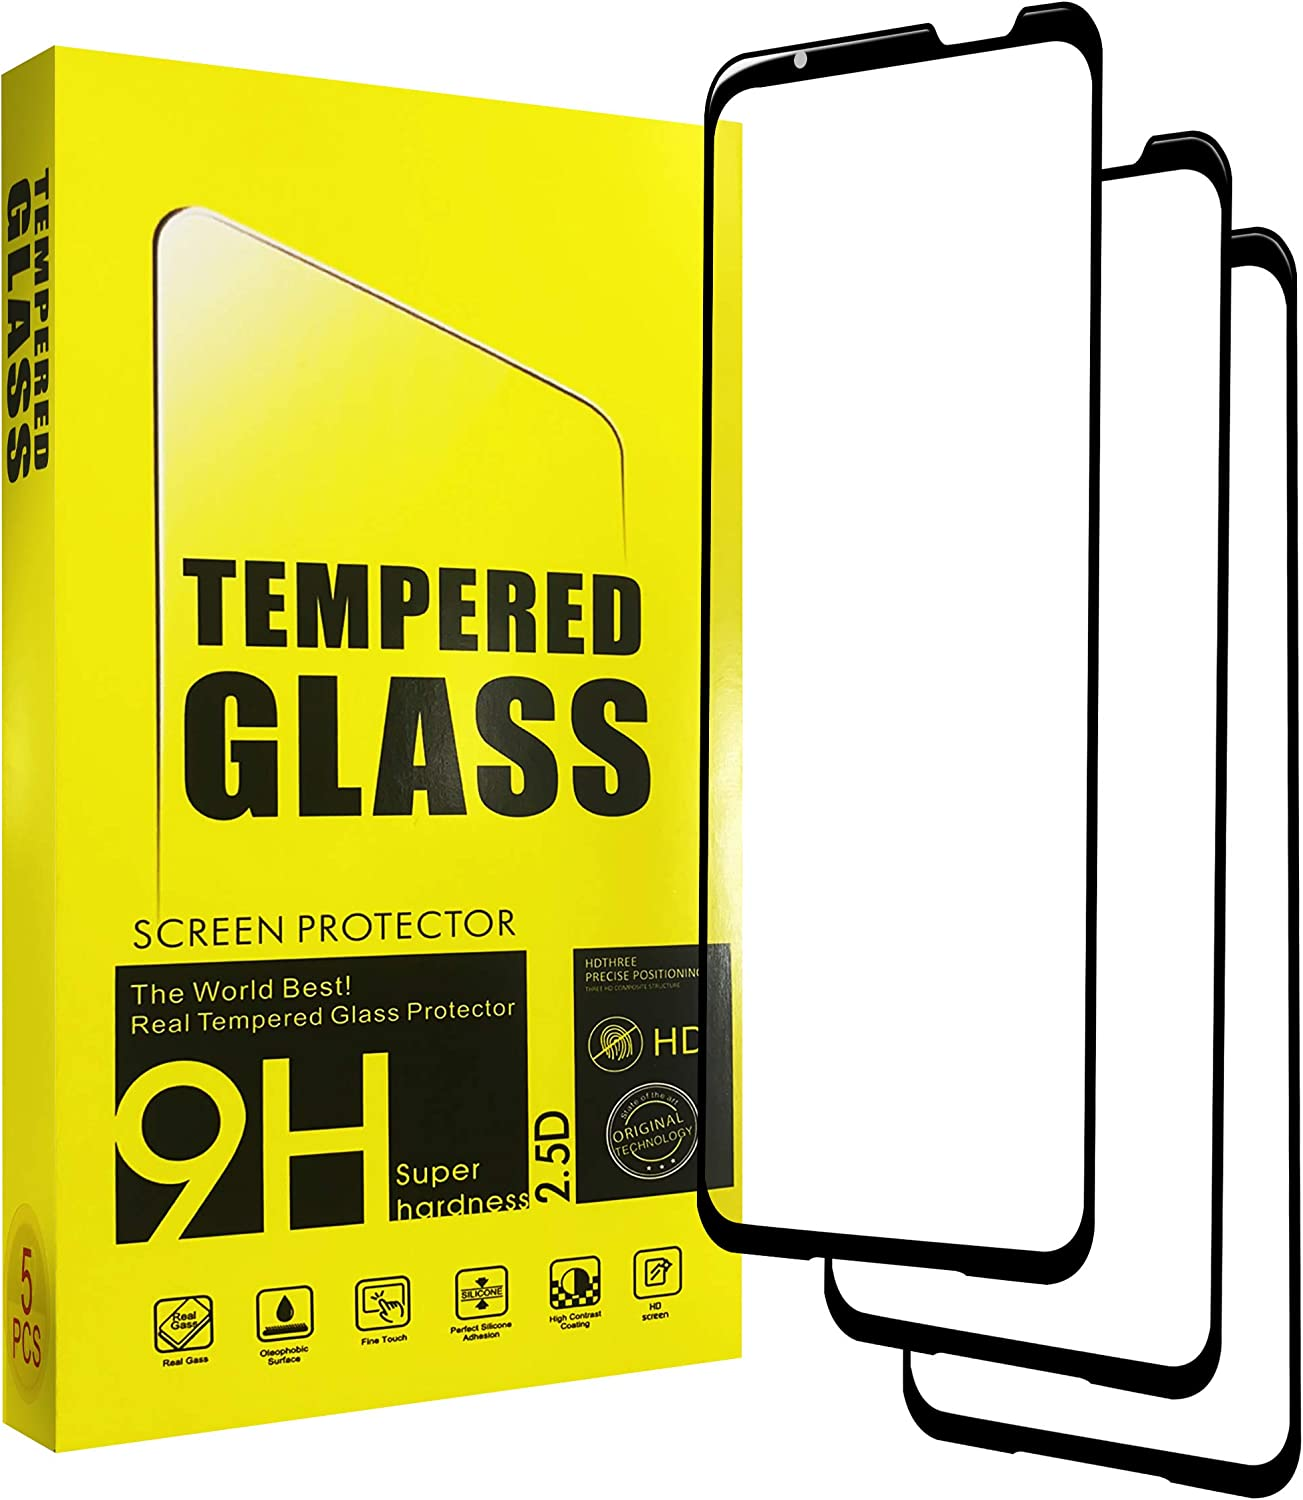 """Asus ROG Phone 5 Screen Protector(5 PACK), Tempered Glass 9H high hardness, Full Coverage HD Anti-Scratch Anti-Fingerprint Clear Tempered Glass Protective Film Compatible with Asus ROG Phone ZS673KS 6.78"""""""